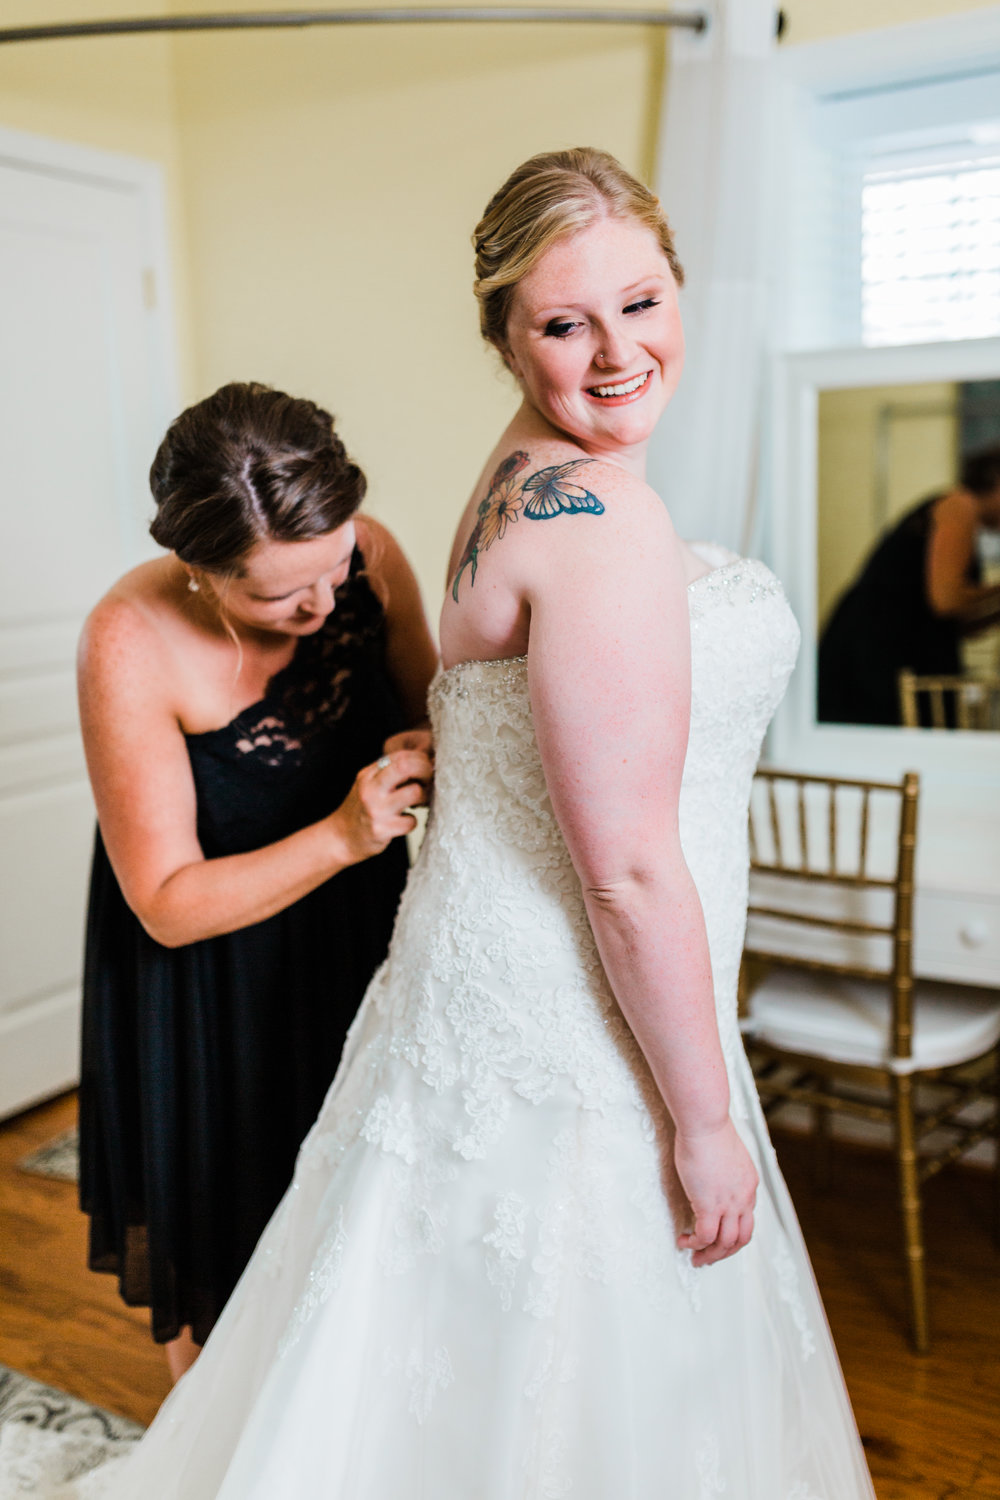 bride with her matron of honor getting her dress on - kurtz's beach wedding - maryland wedding photographer